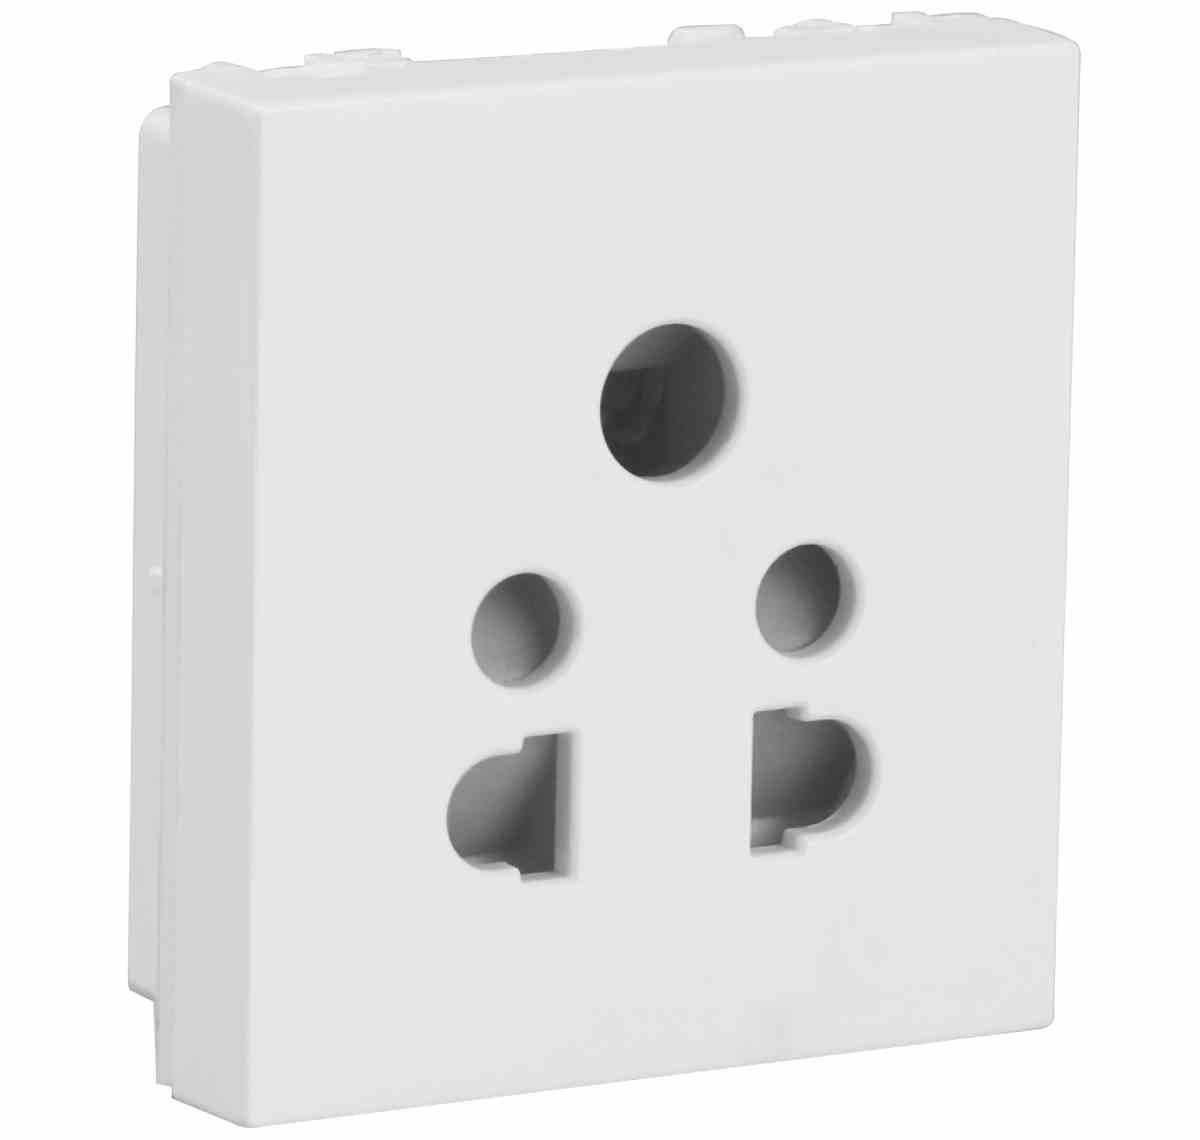 6A 5 PIN Shuttered Socket - Electrical and Networking, Electrical ...